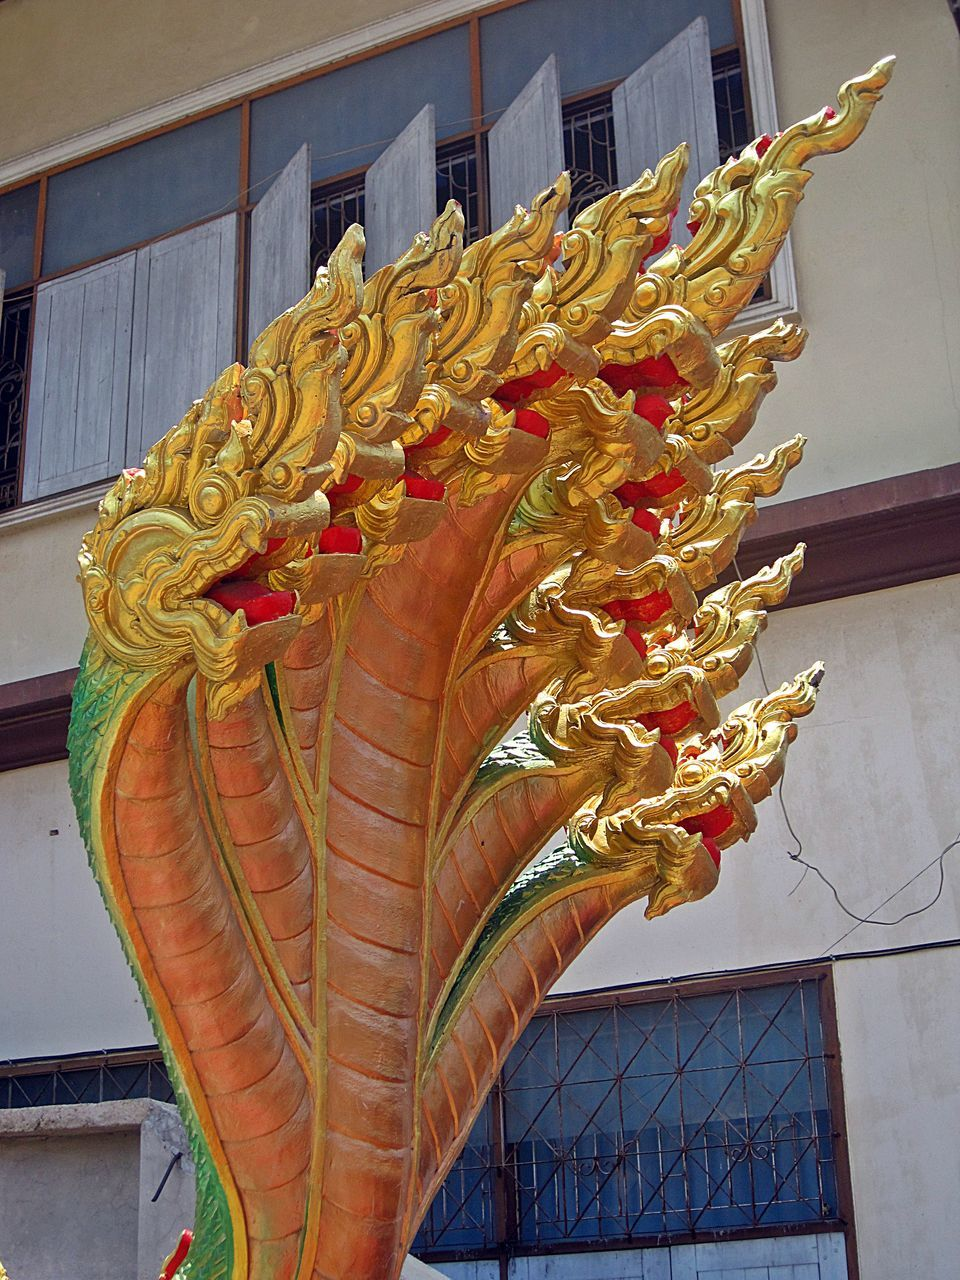 architecture, built structure, building exterior, day, outdoors, low angle view, chinese dragon, dragon, no people, city